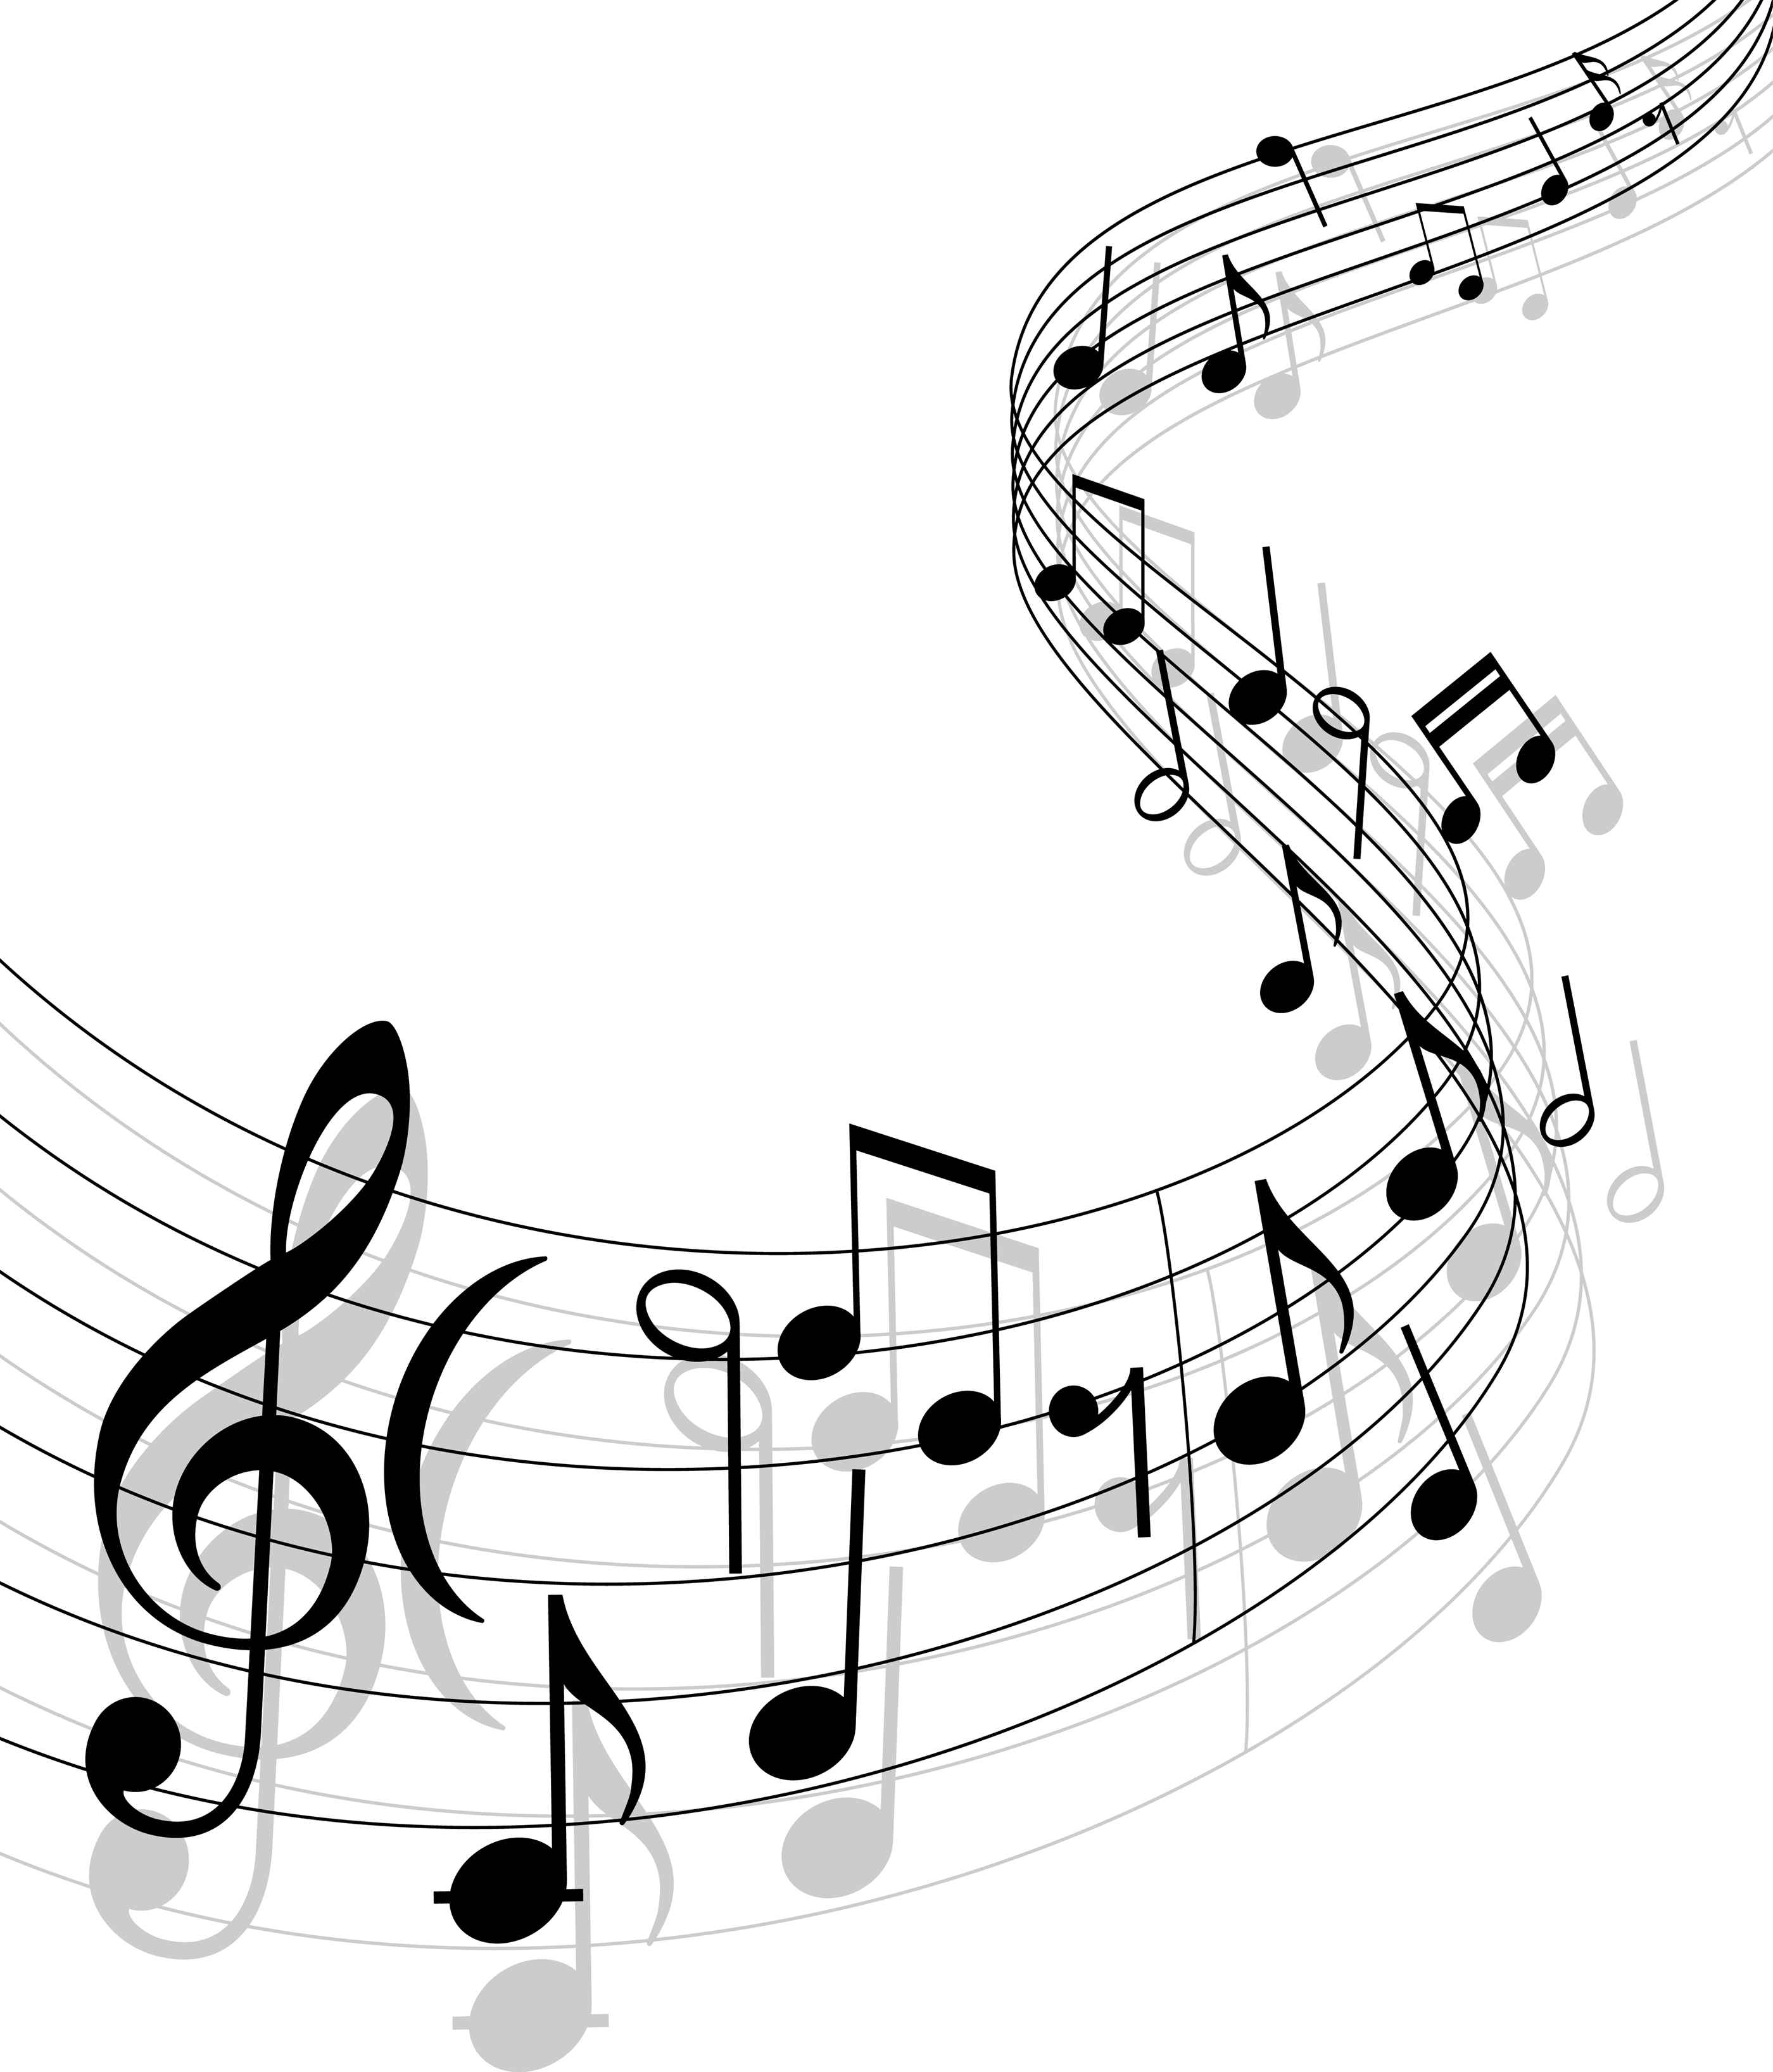 Clipart latest gospel music 2018 clip freeuse stock Music note musical notes music musical note clipart free vector for ... clip freeuse stock